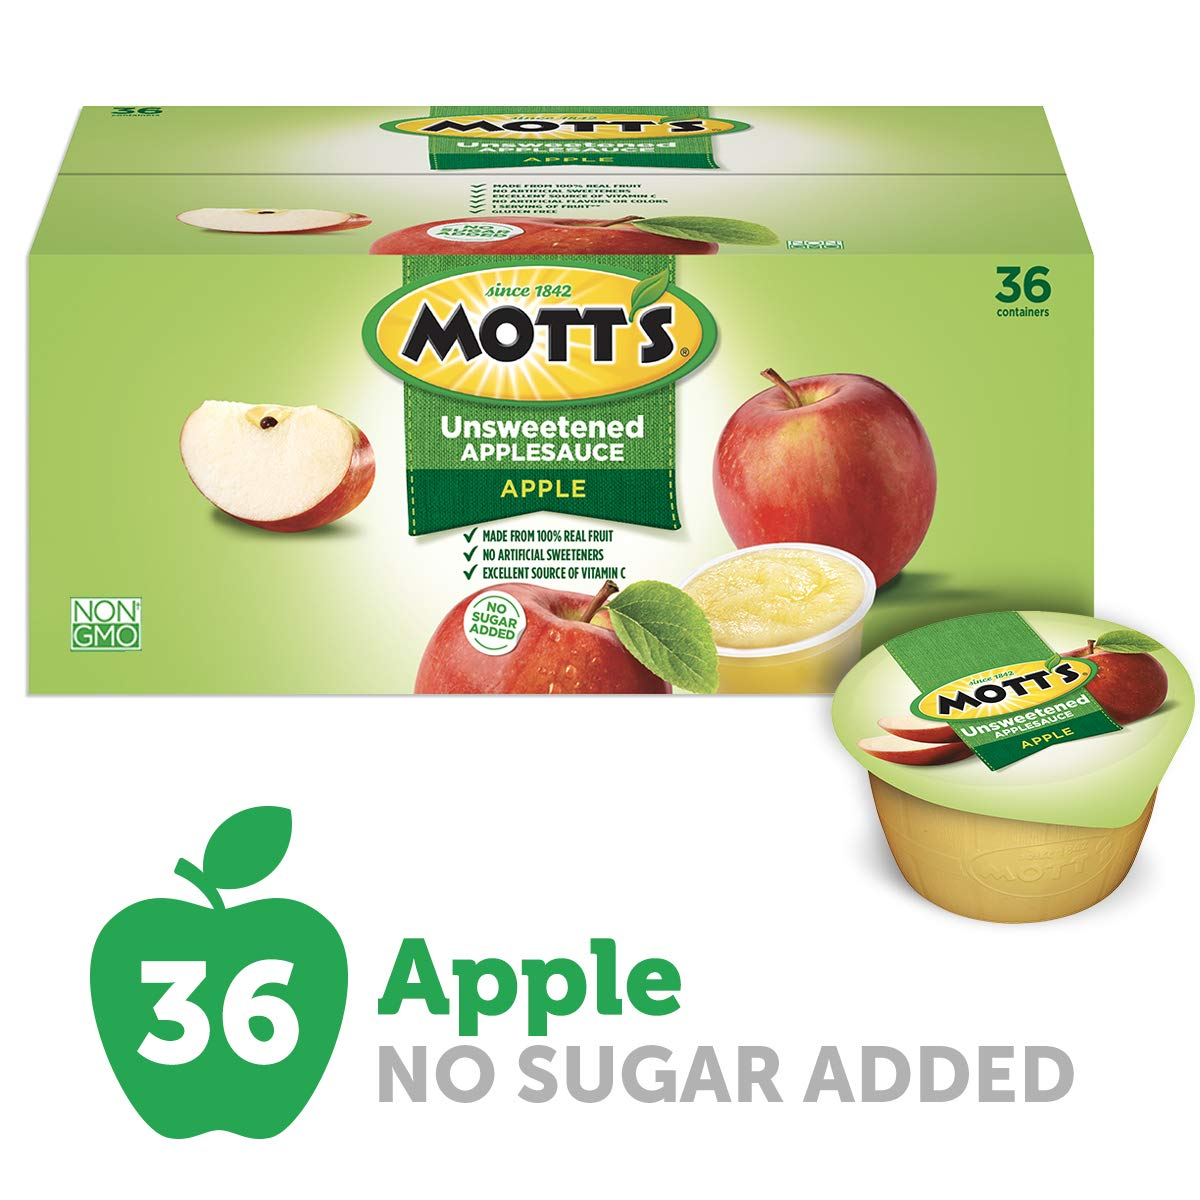 Mott's Unsweetened Applesauce, 3.9 Ounce Cup, 36 Count (Pack of 1), 140.4 Ounce